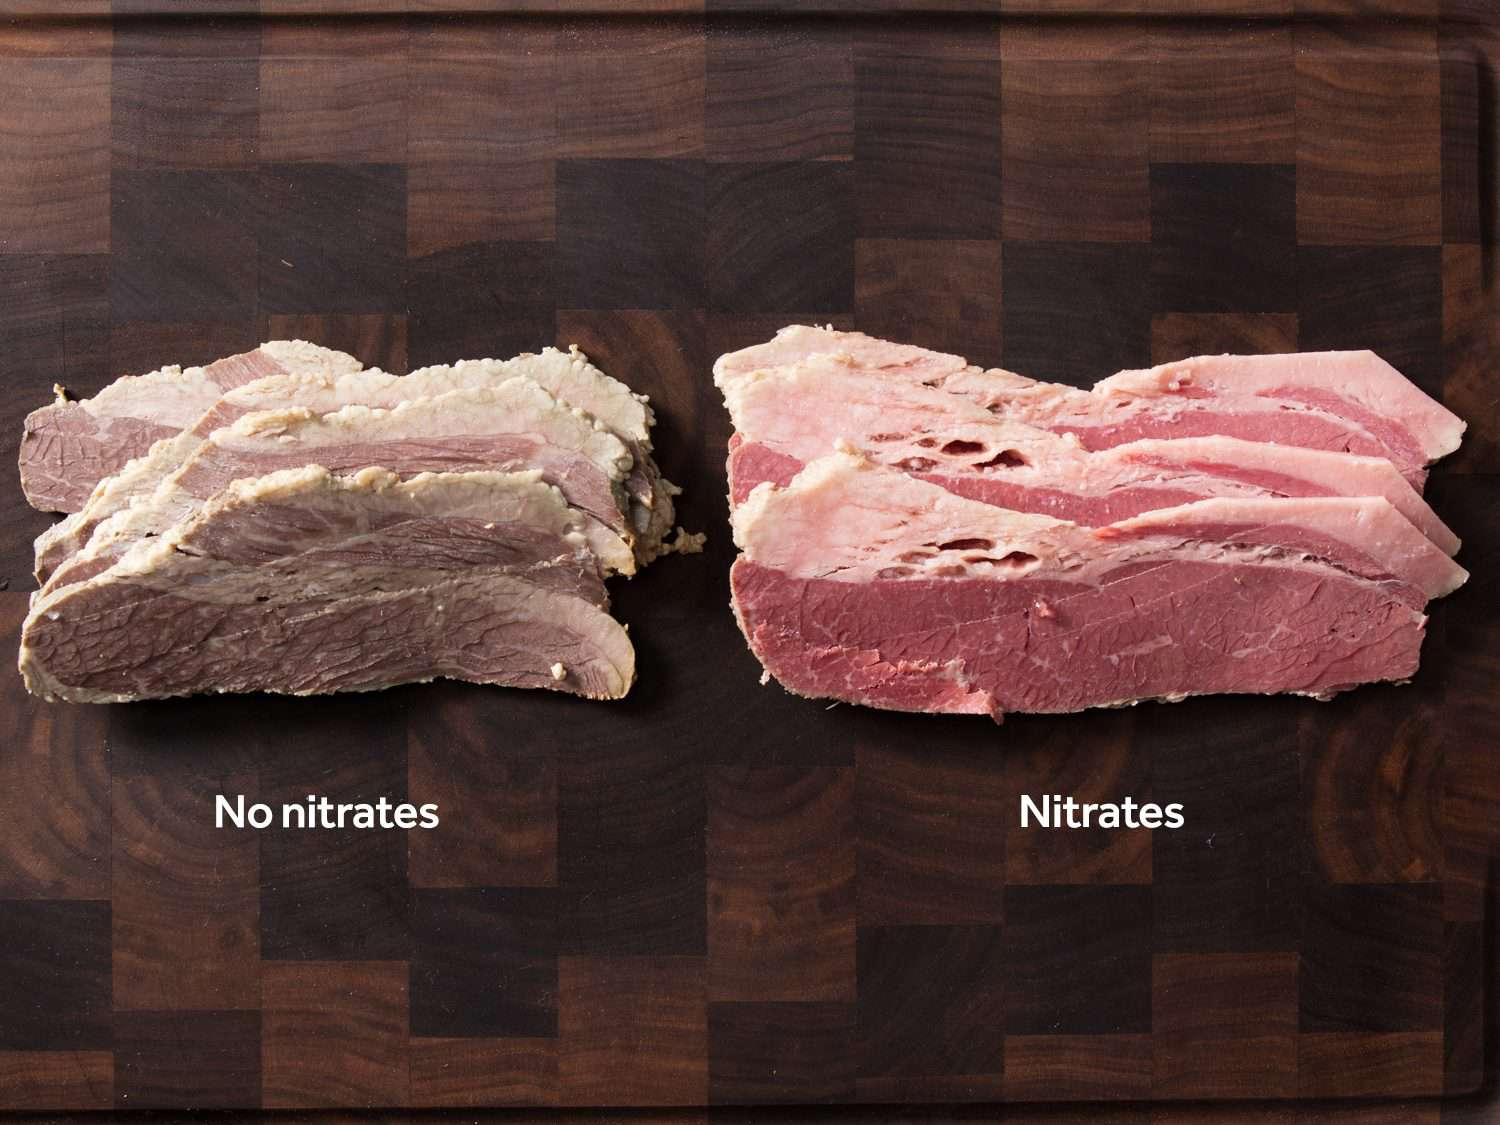 Side-by-side comparison of corned beef cured without nitrites (left) and with nitrites (right)